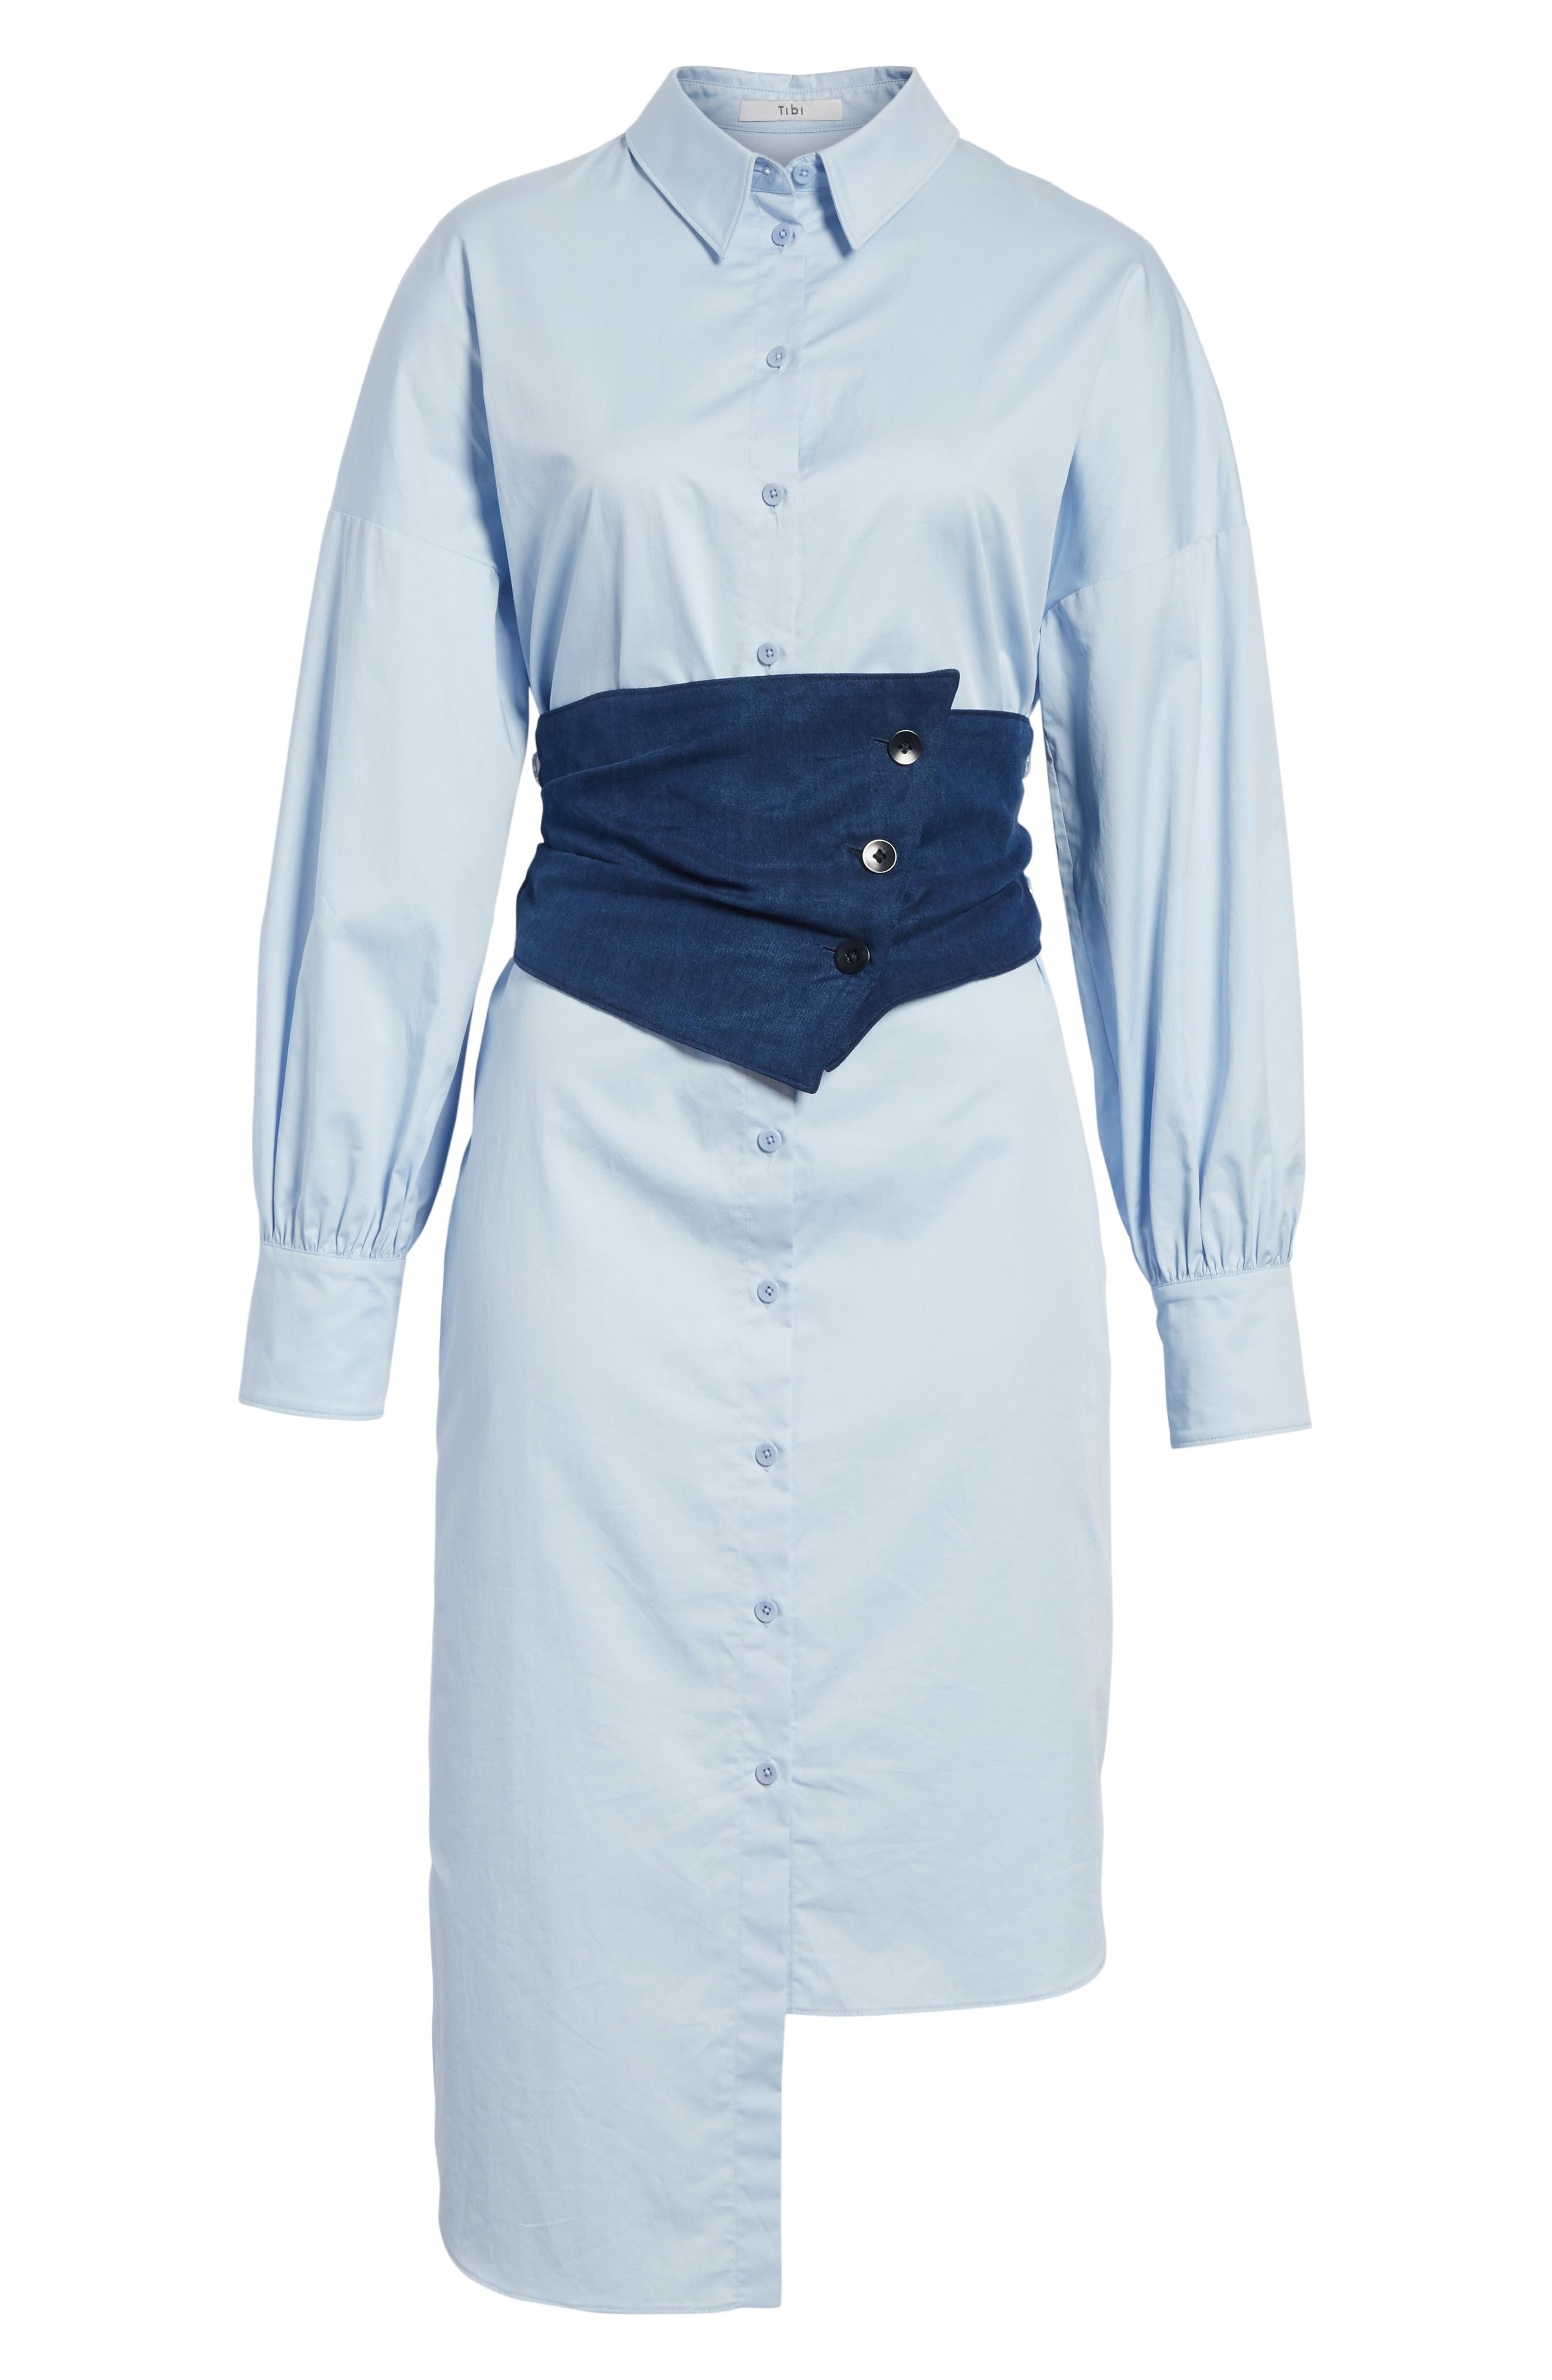 Corset Shirtdress,                             Alternate thumbnail 6, color,                             Morning Blue/ Navy Multi